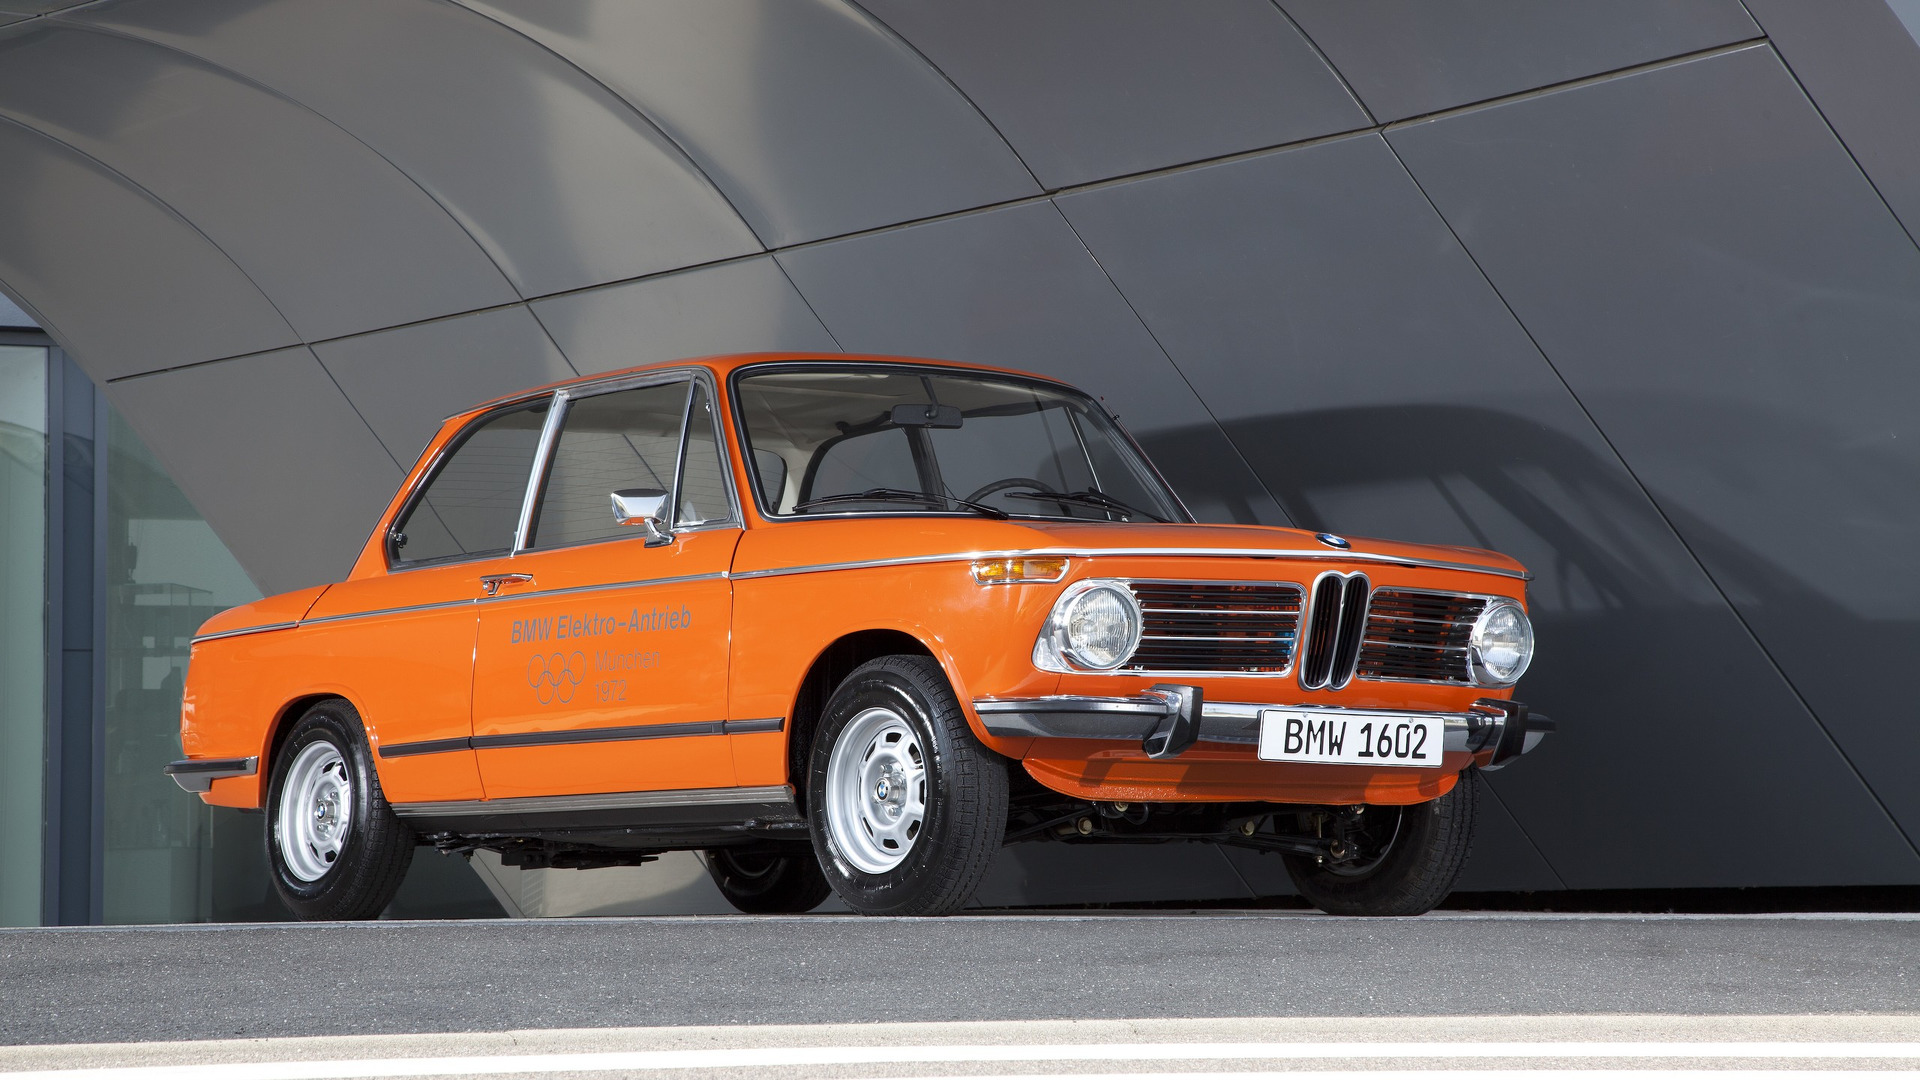 VIDEO: Frank Stephenson Discusses Concept Car Based BMW 1602 Electric